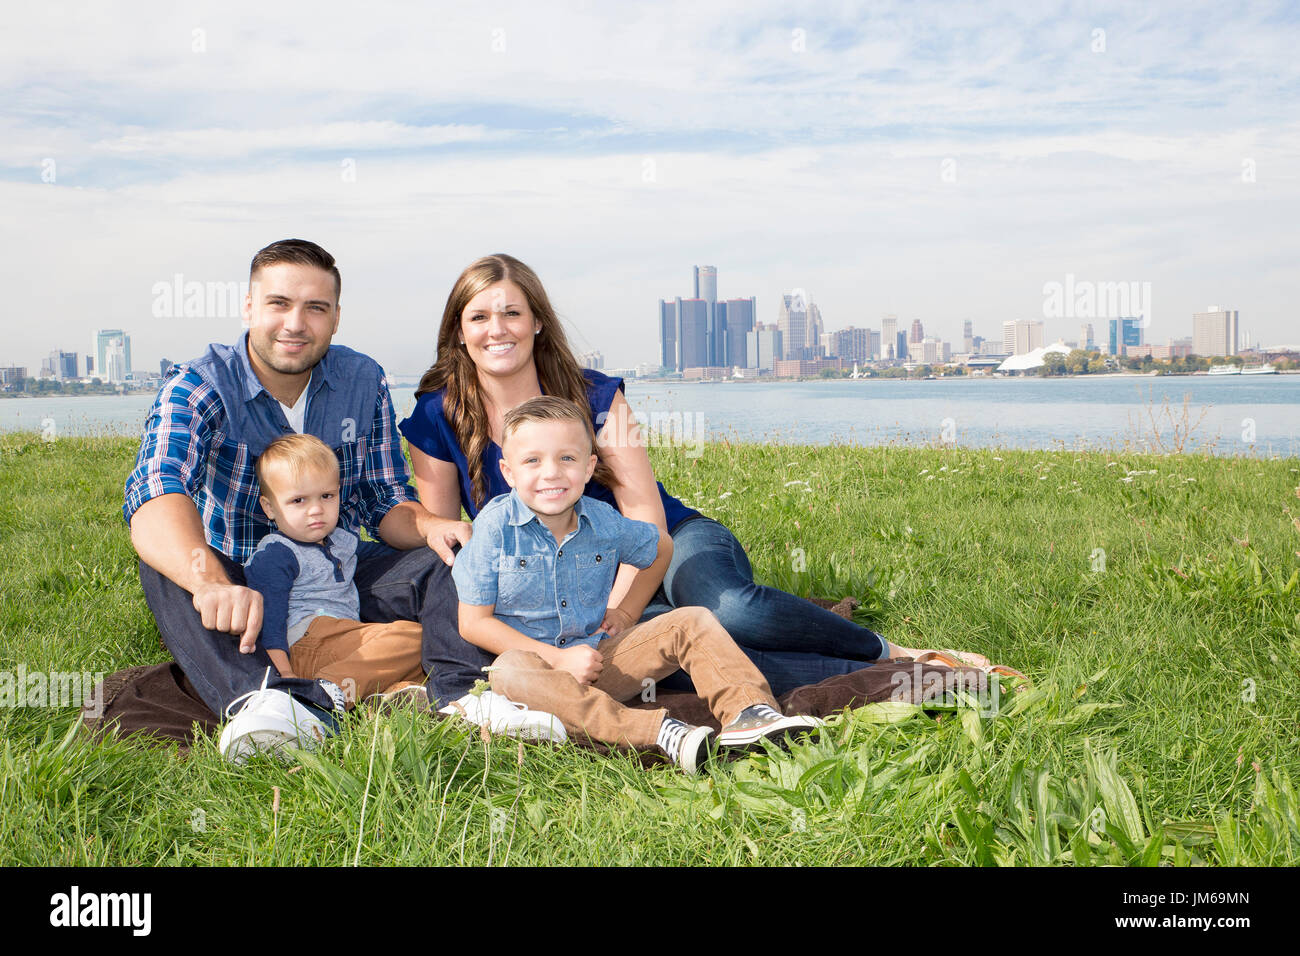 A family at the park in the city - Stock Image